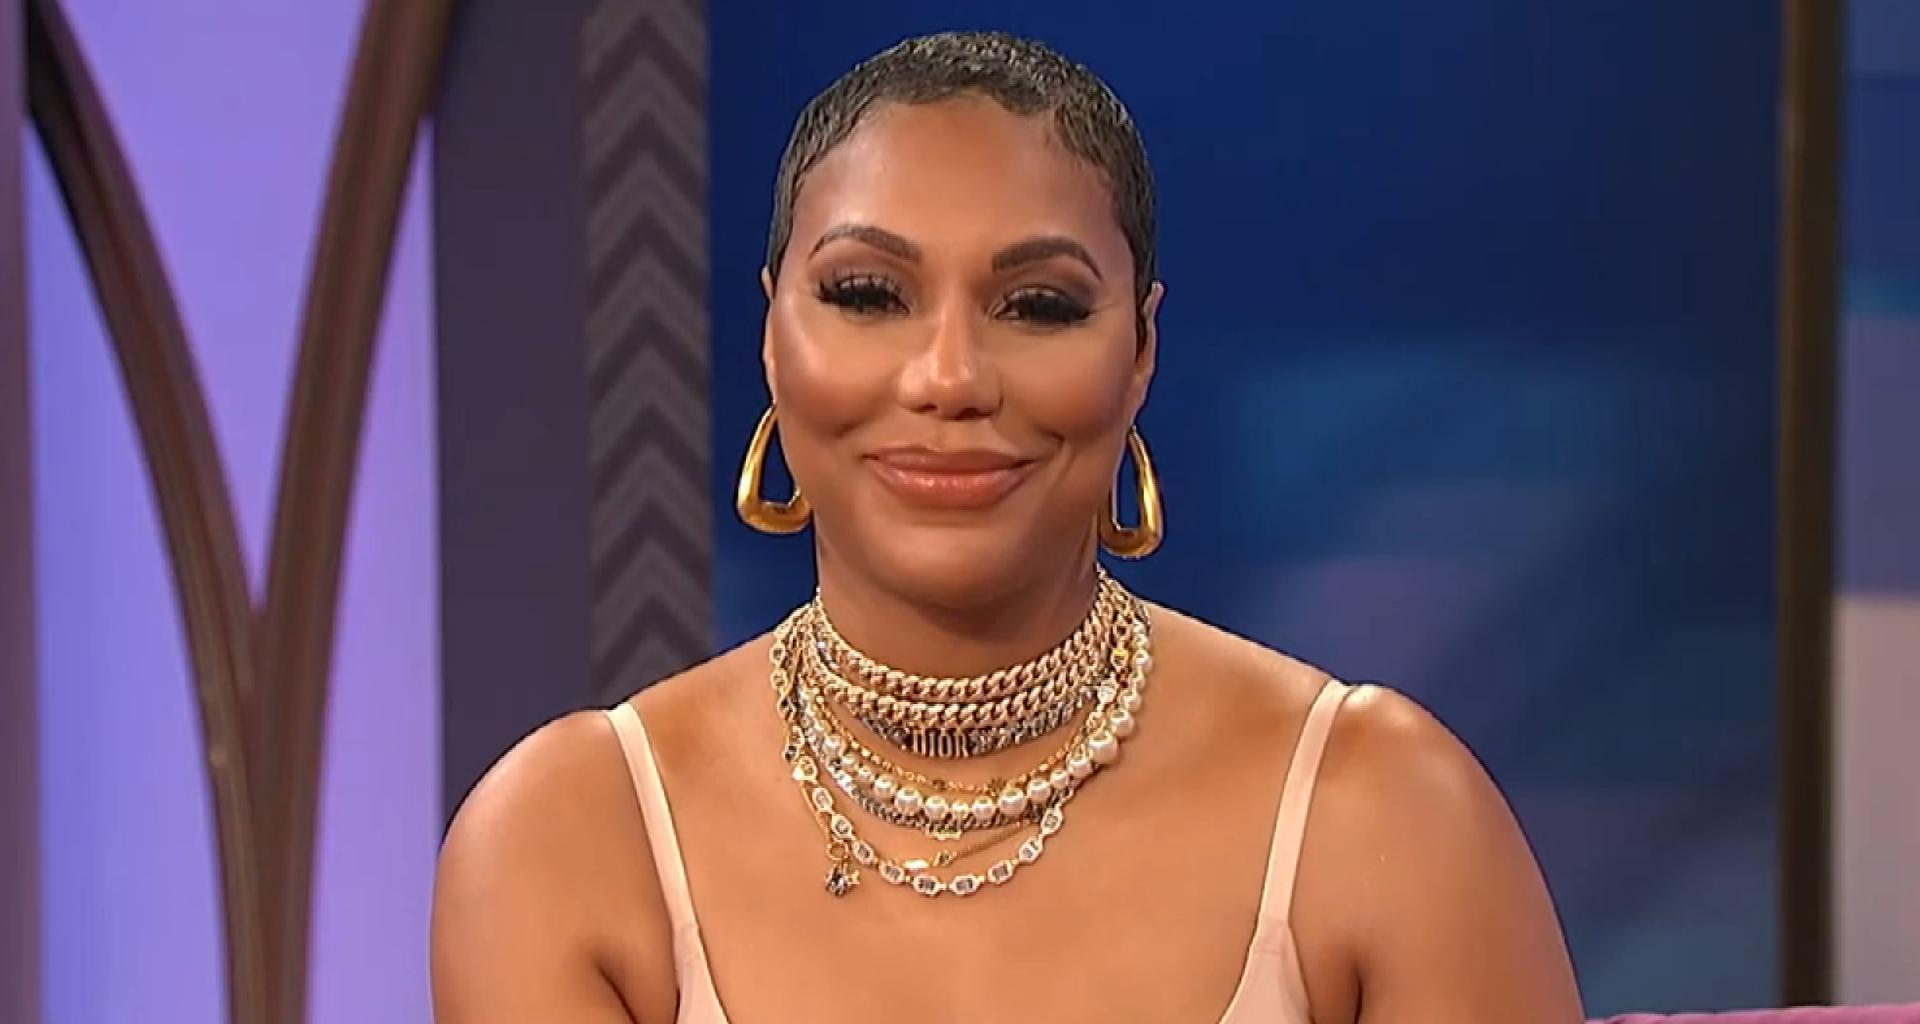 Tamar Braxton's Appearance On Wendy Williams' Show Blows Fans Away - She Is Wearing Nothing But Spanx!